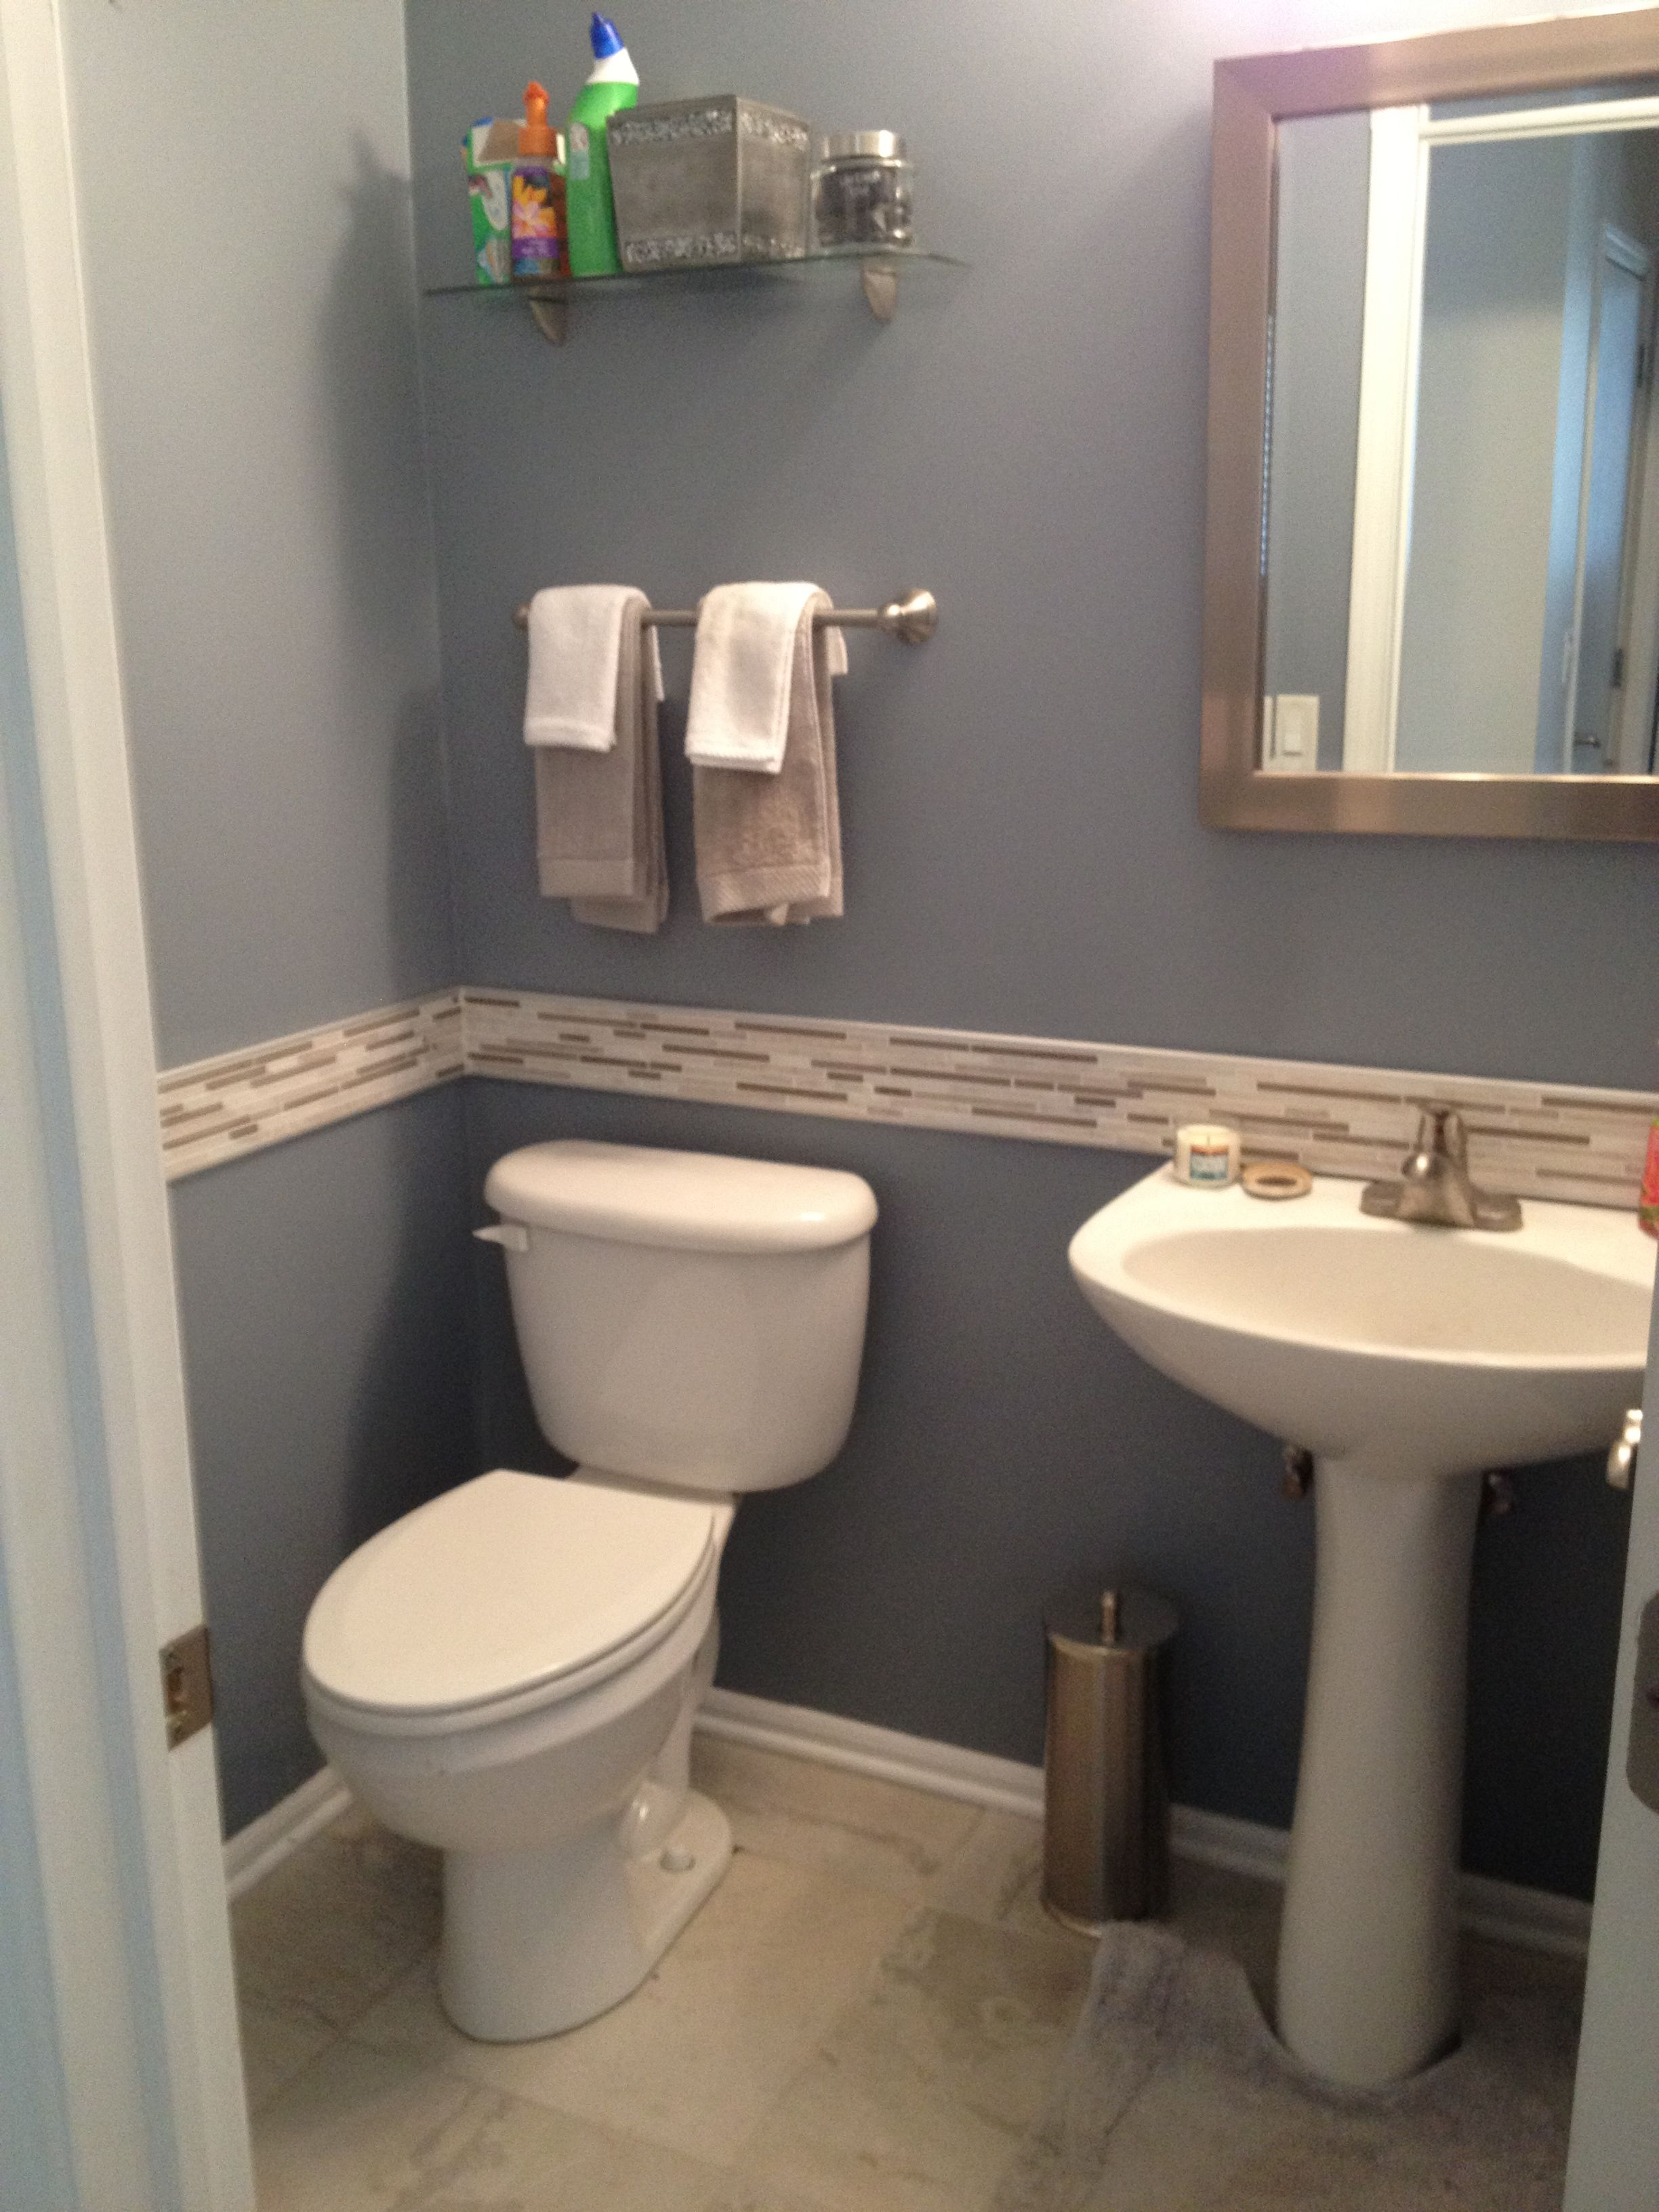 Half bath remodel my life projects pinterest half for Small 1 2 bathroom decorating ideas